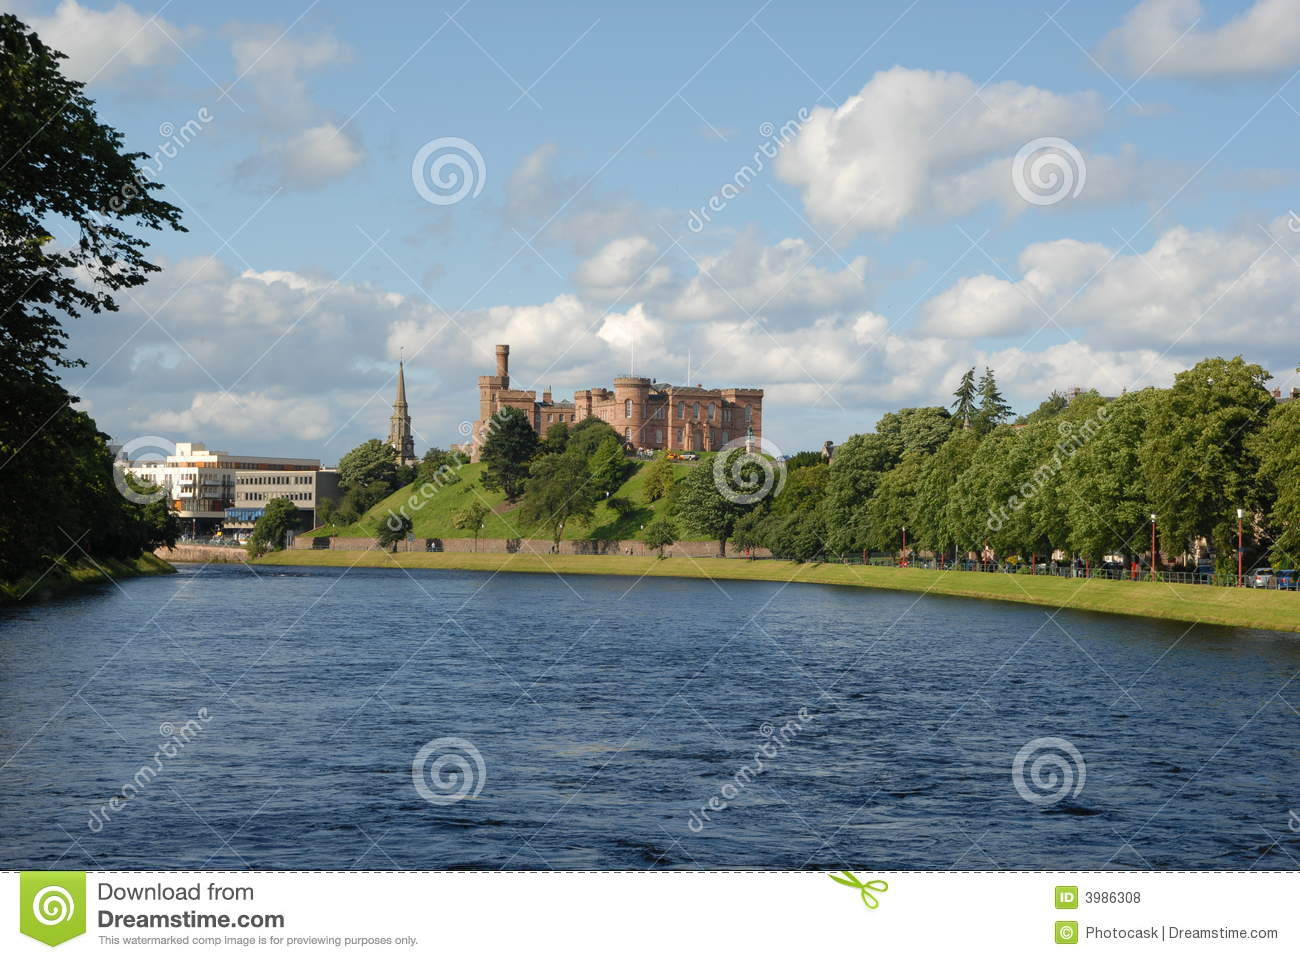 Inverness And River Ness Royalty Free Stock Photos - Image: 3986308